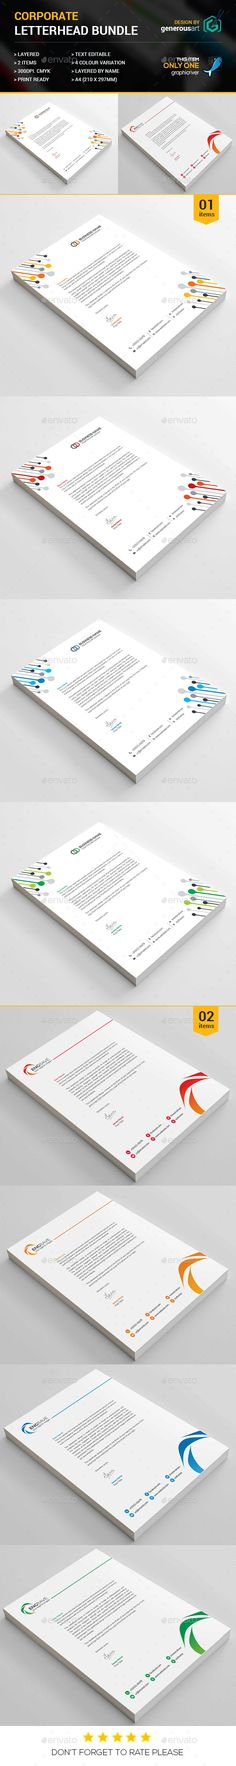 Corporate Letterhead  Cleanses Creative And Yellow